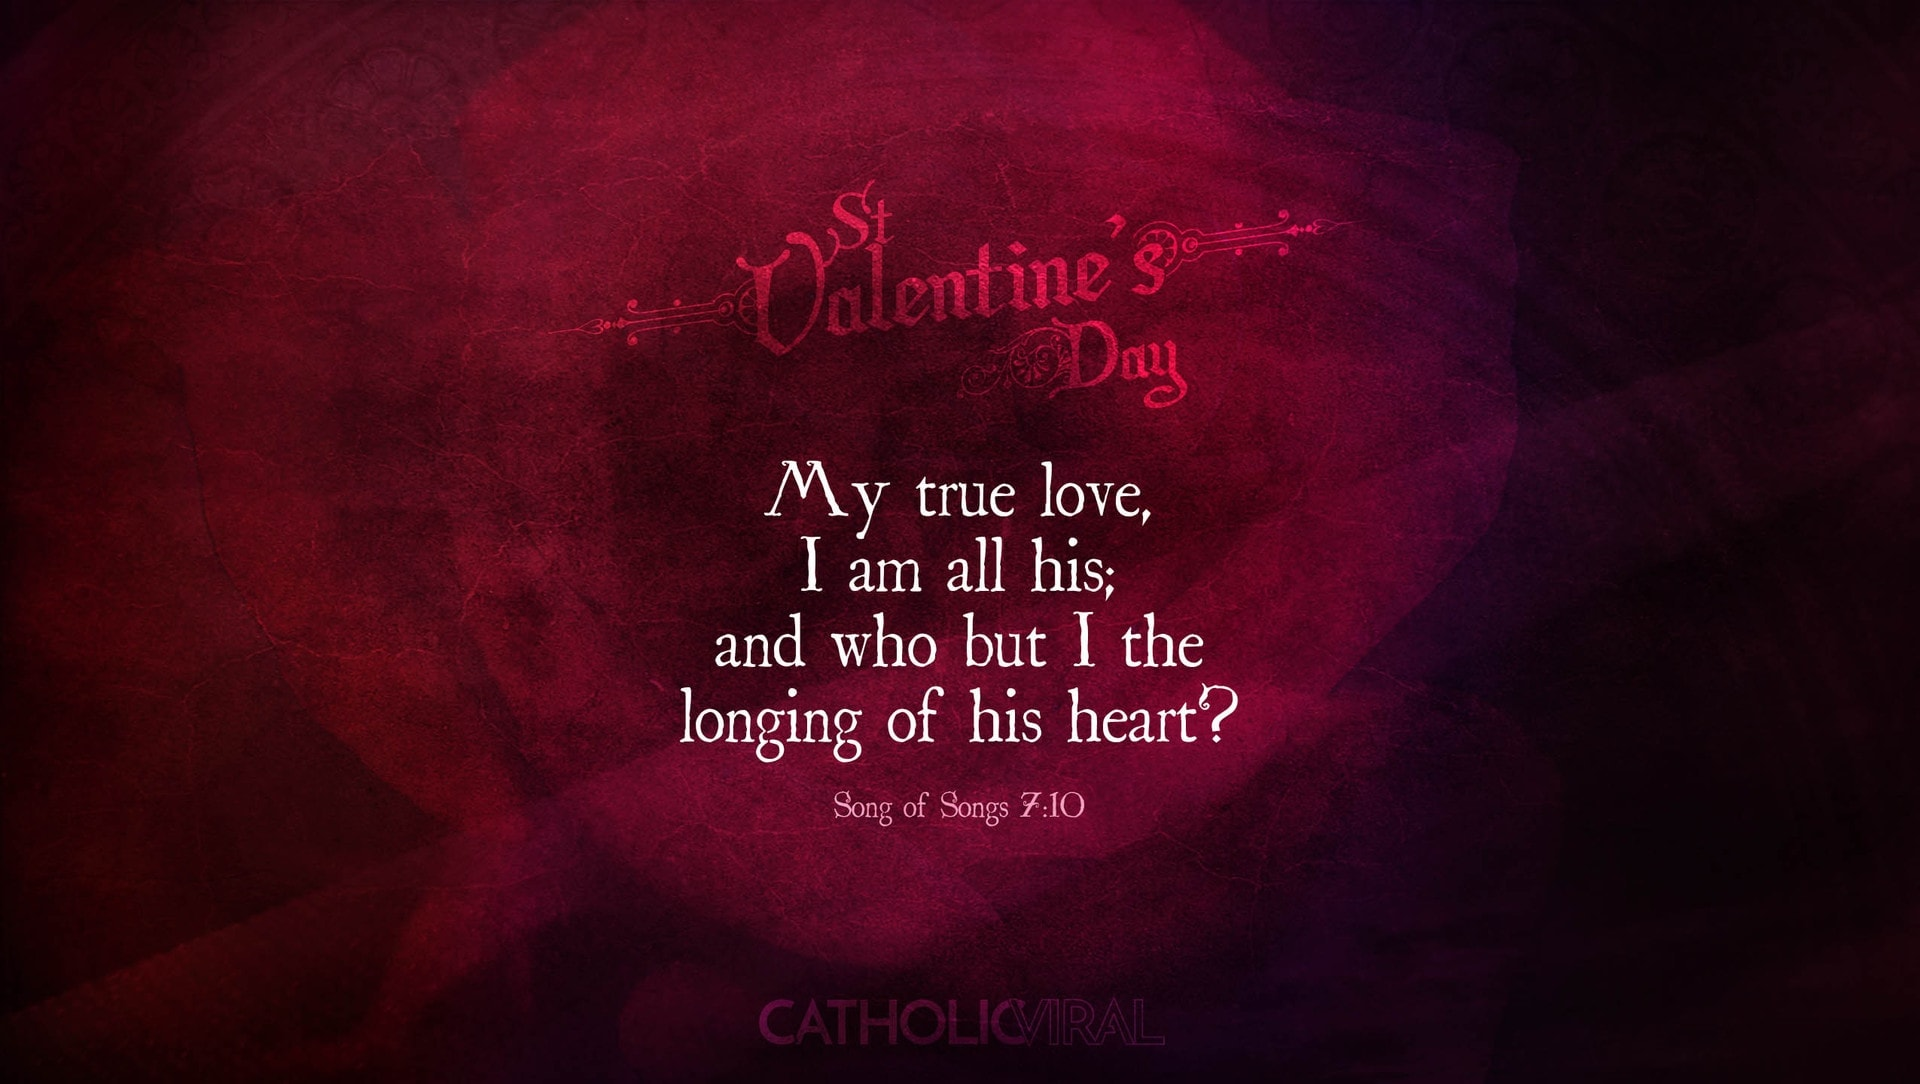 25 Valentines' Day Bible Verses on Love + 25 Free Wallpapers | Songs 7:10